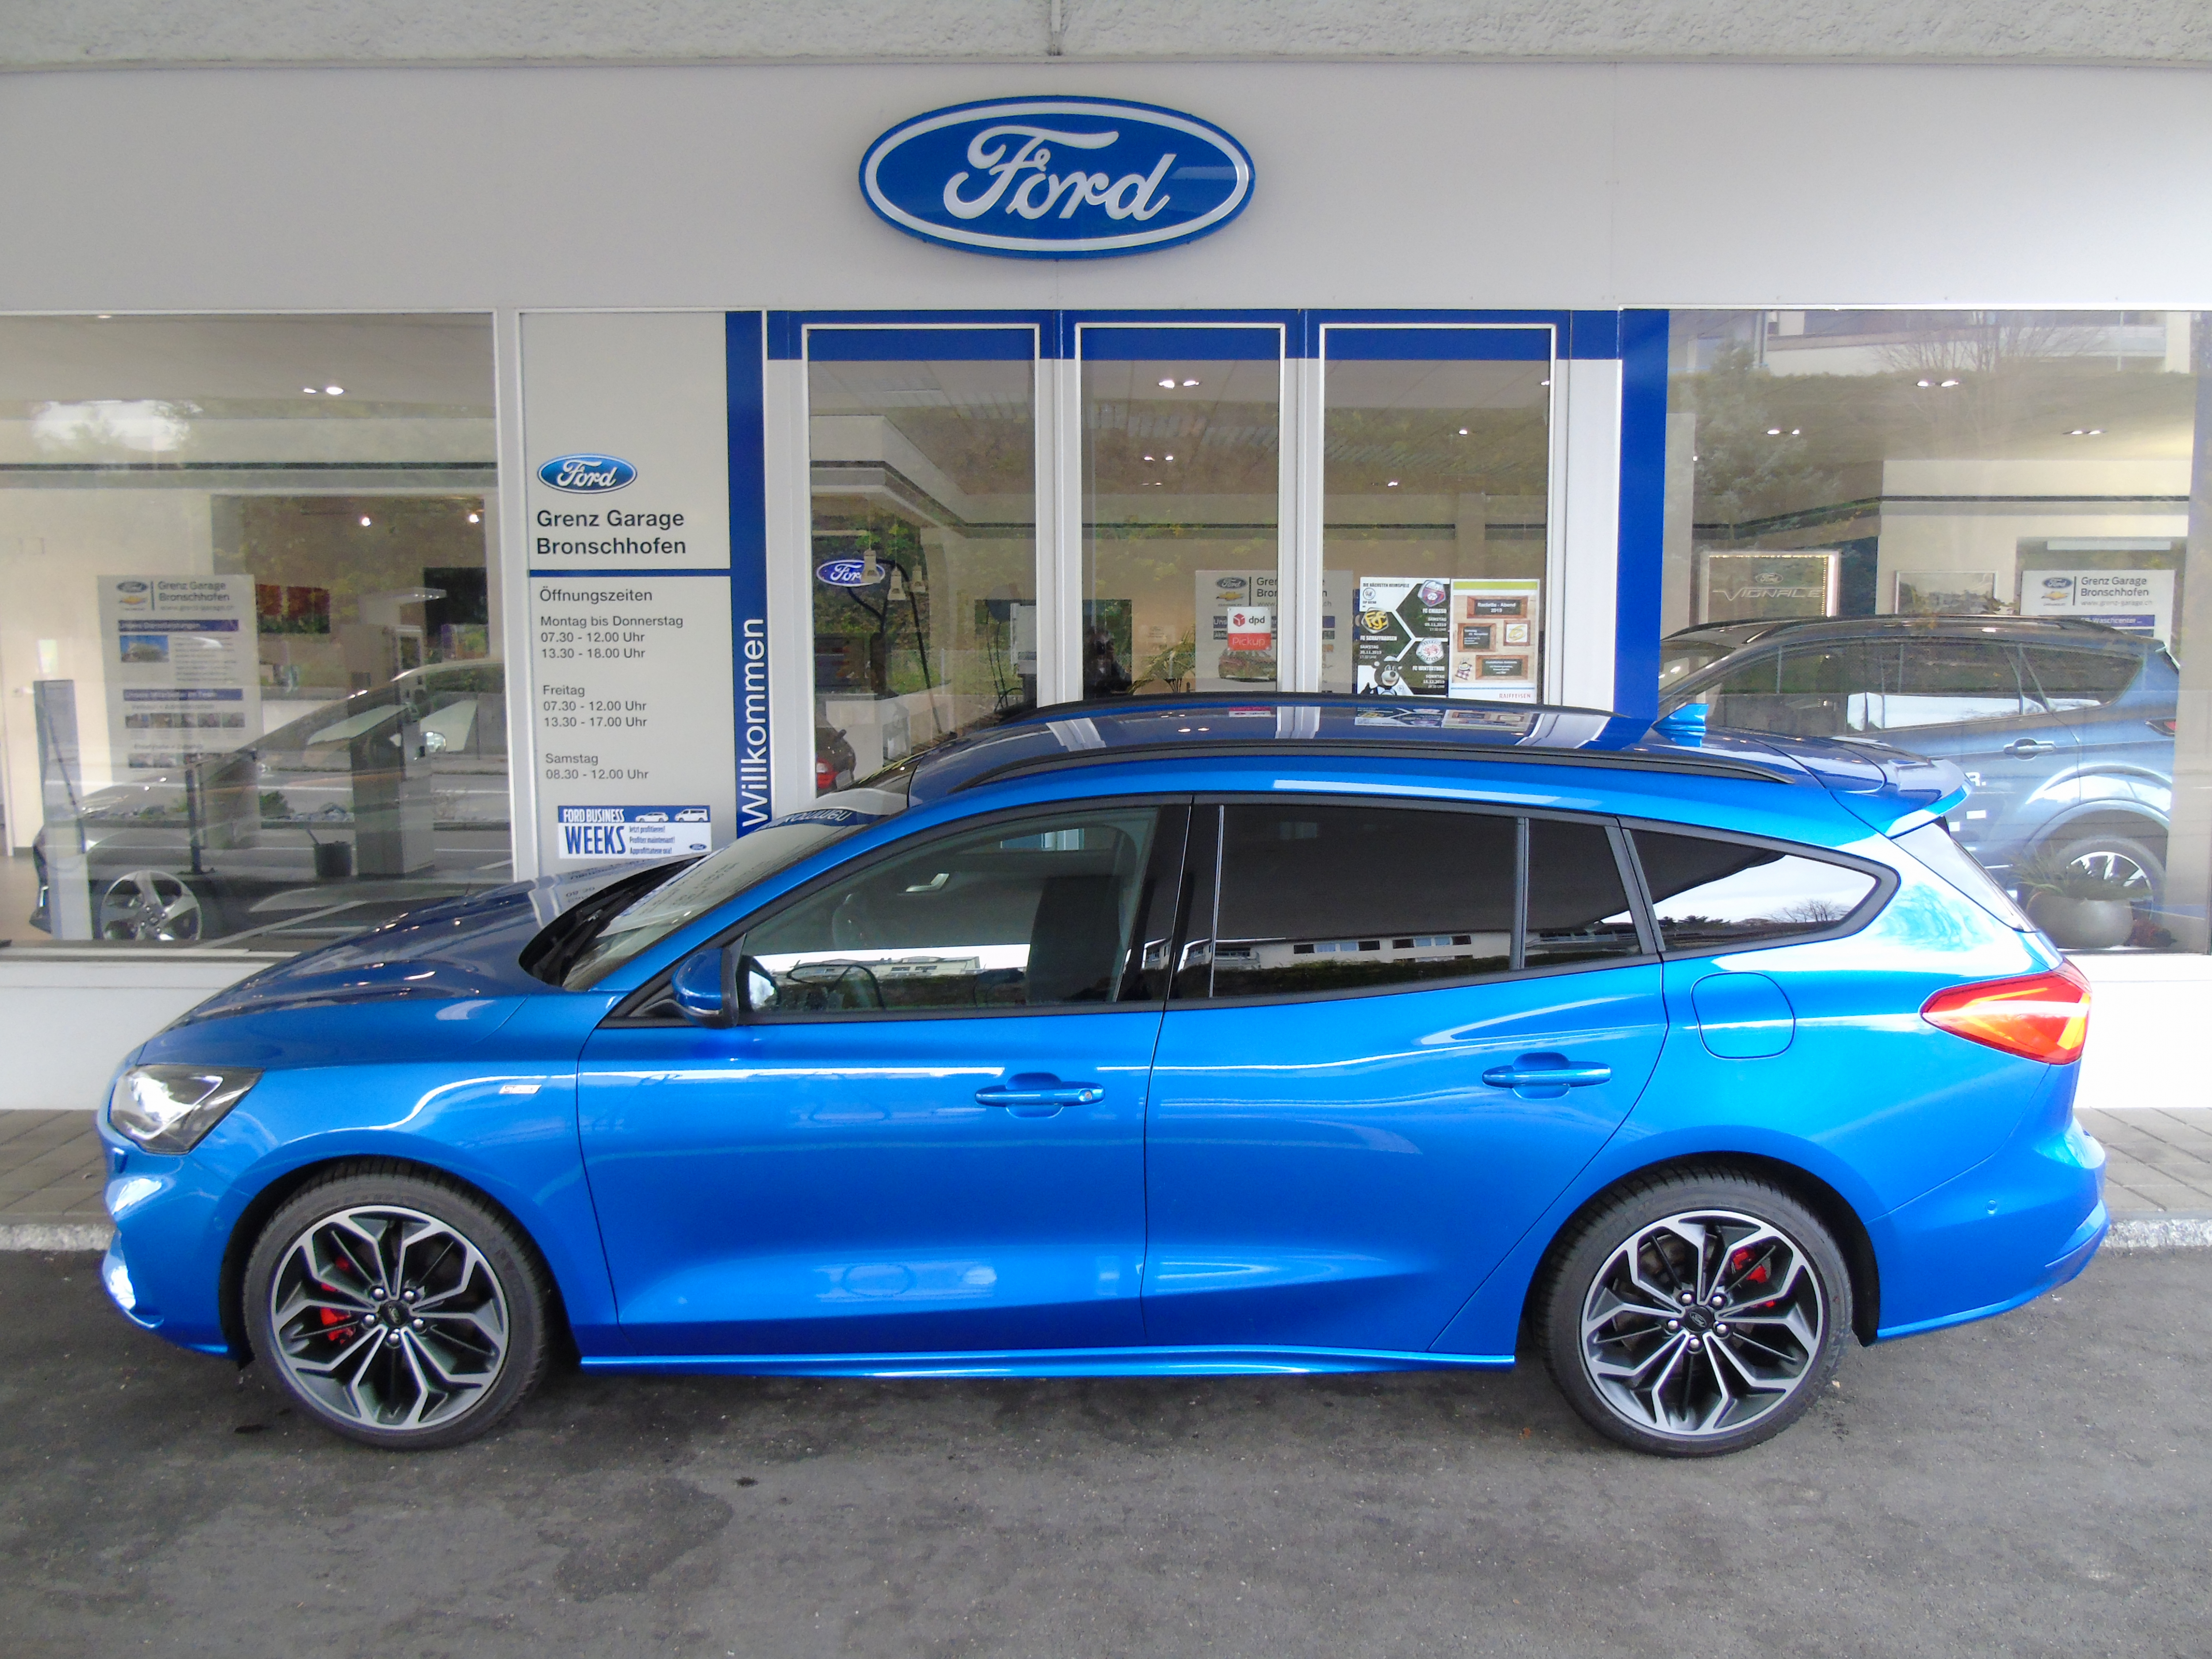 Buy Used Car Wagon Ford Focus Sw 1 0i Eb 125 St Line 5000 Km At 25790 Chf On Carforyou Ch